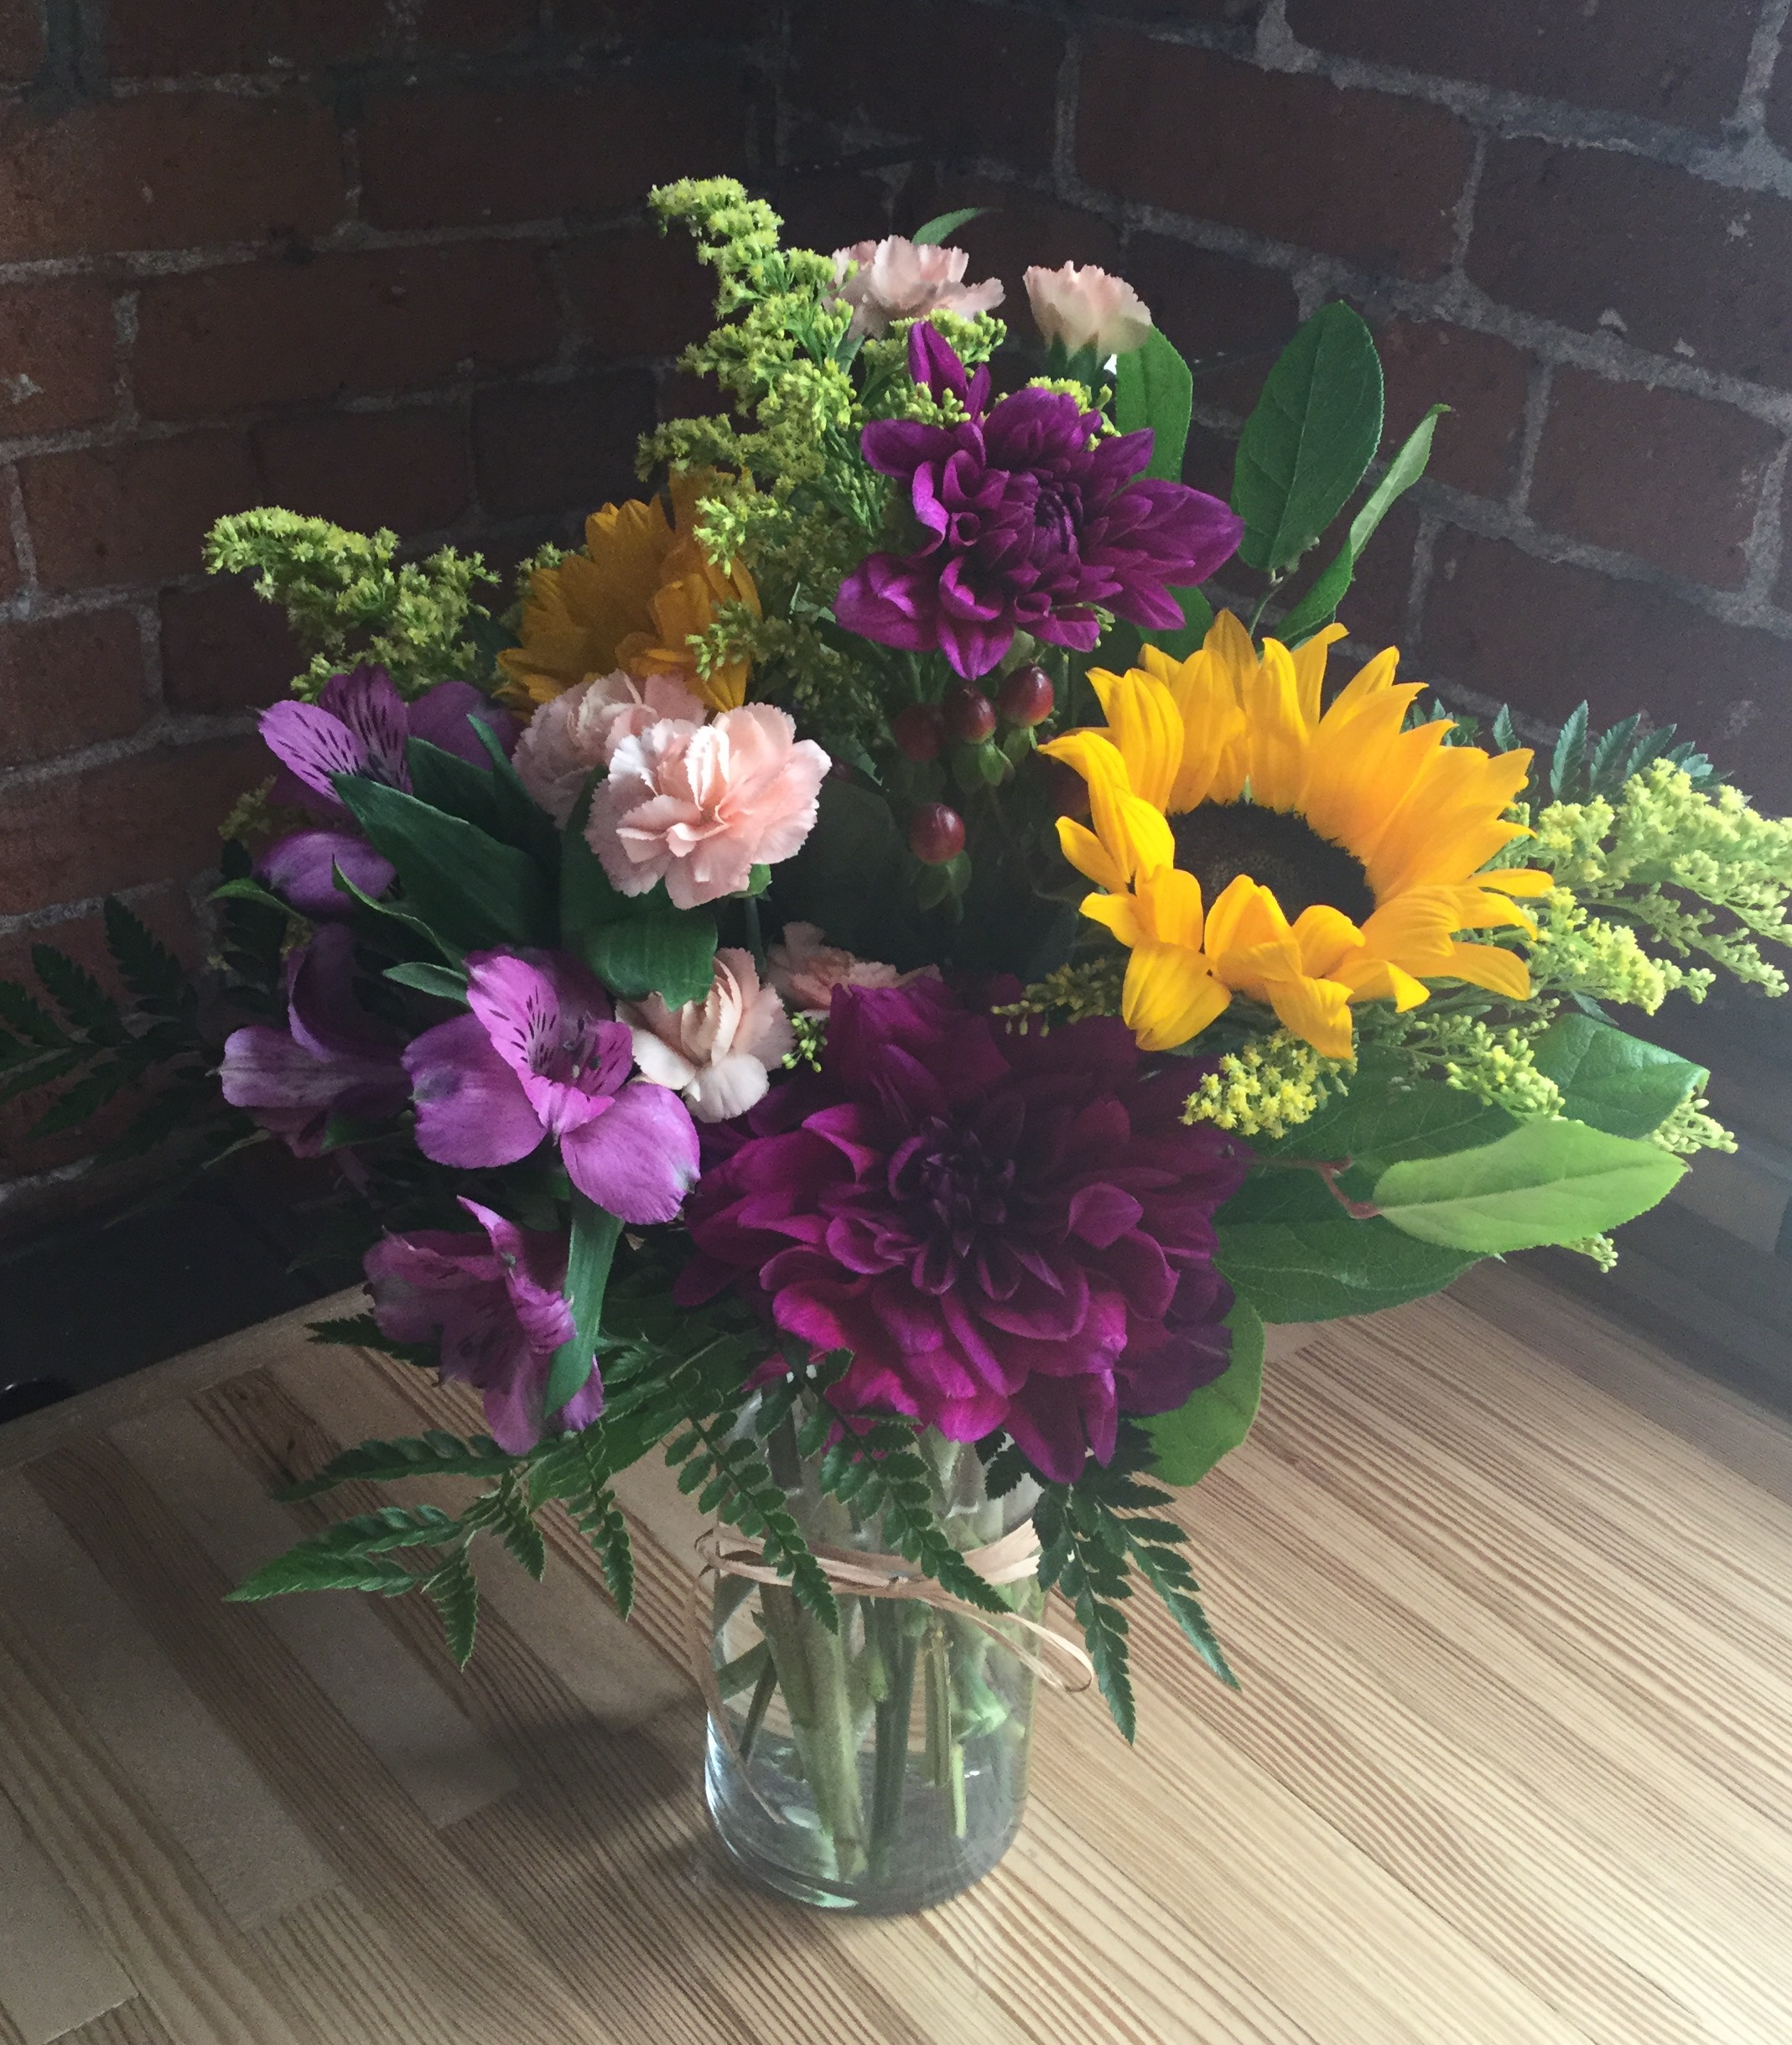 Image: Small Bouquet in vase. More examples of our natural arrangements can be seen below.